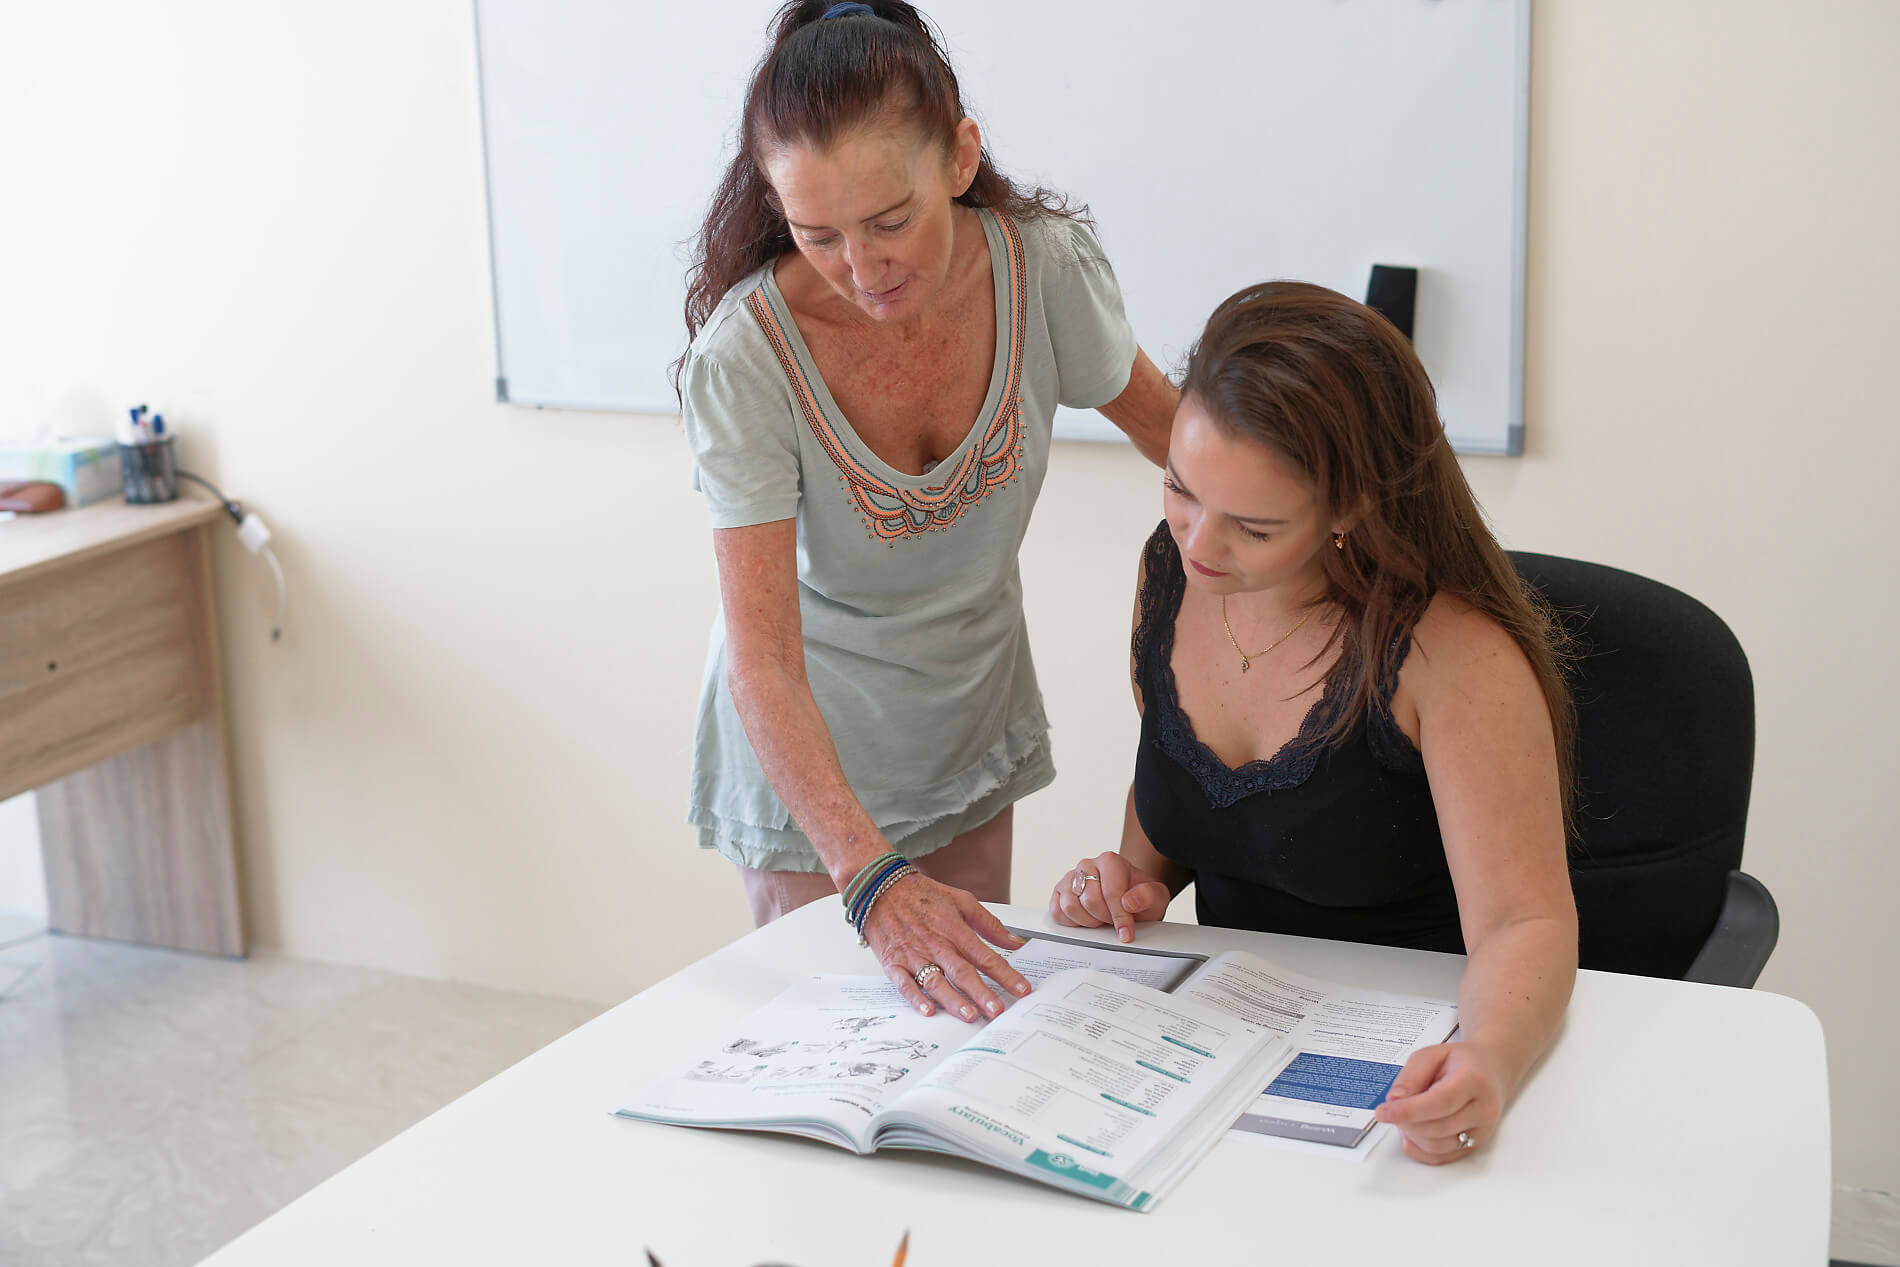 English courses in Ras Al Khaimah